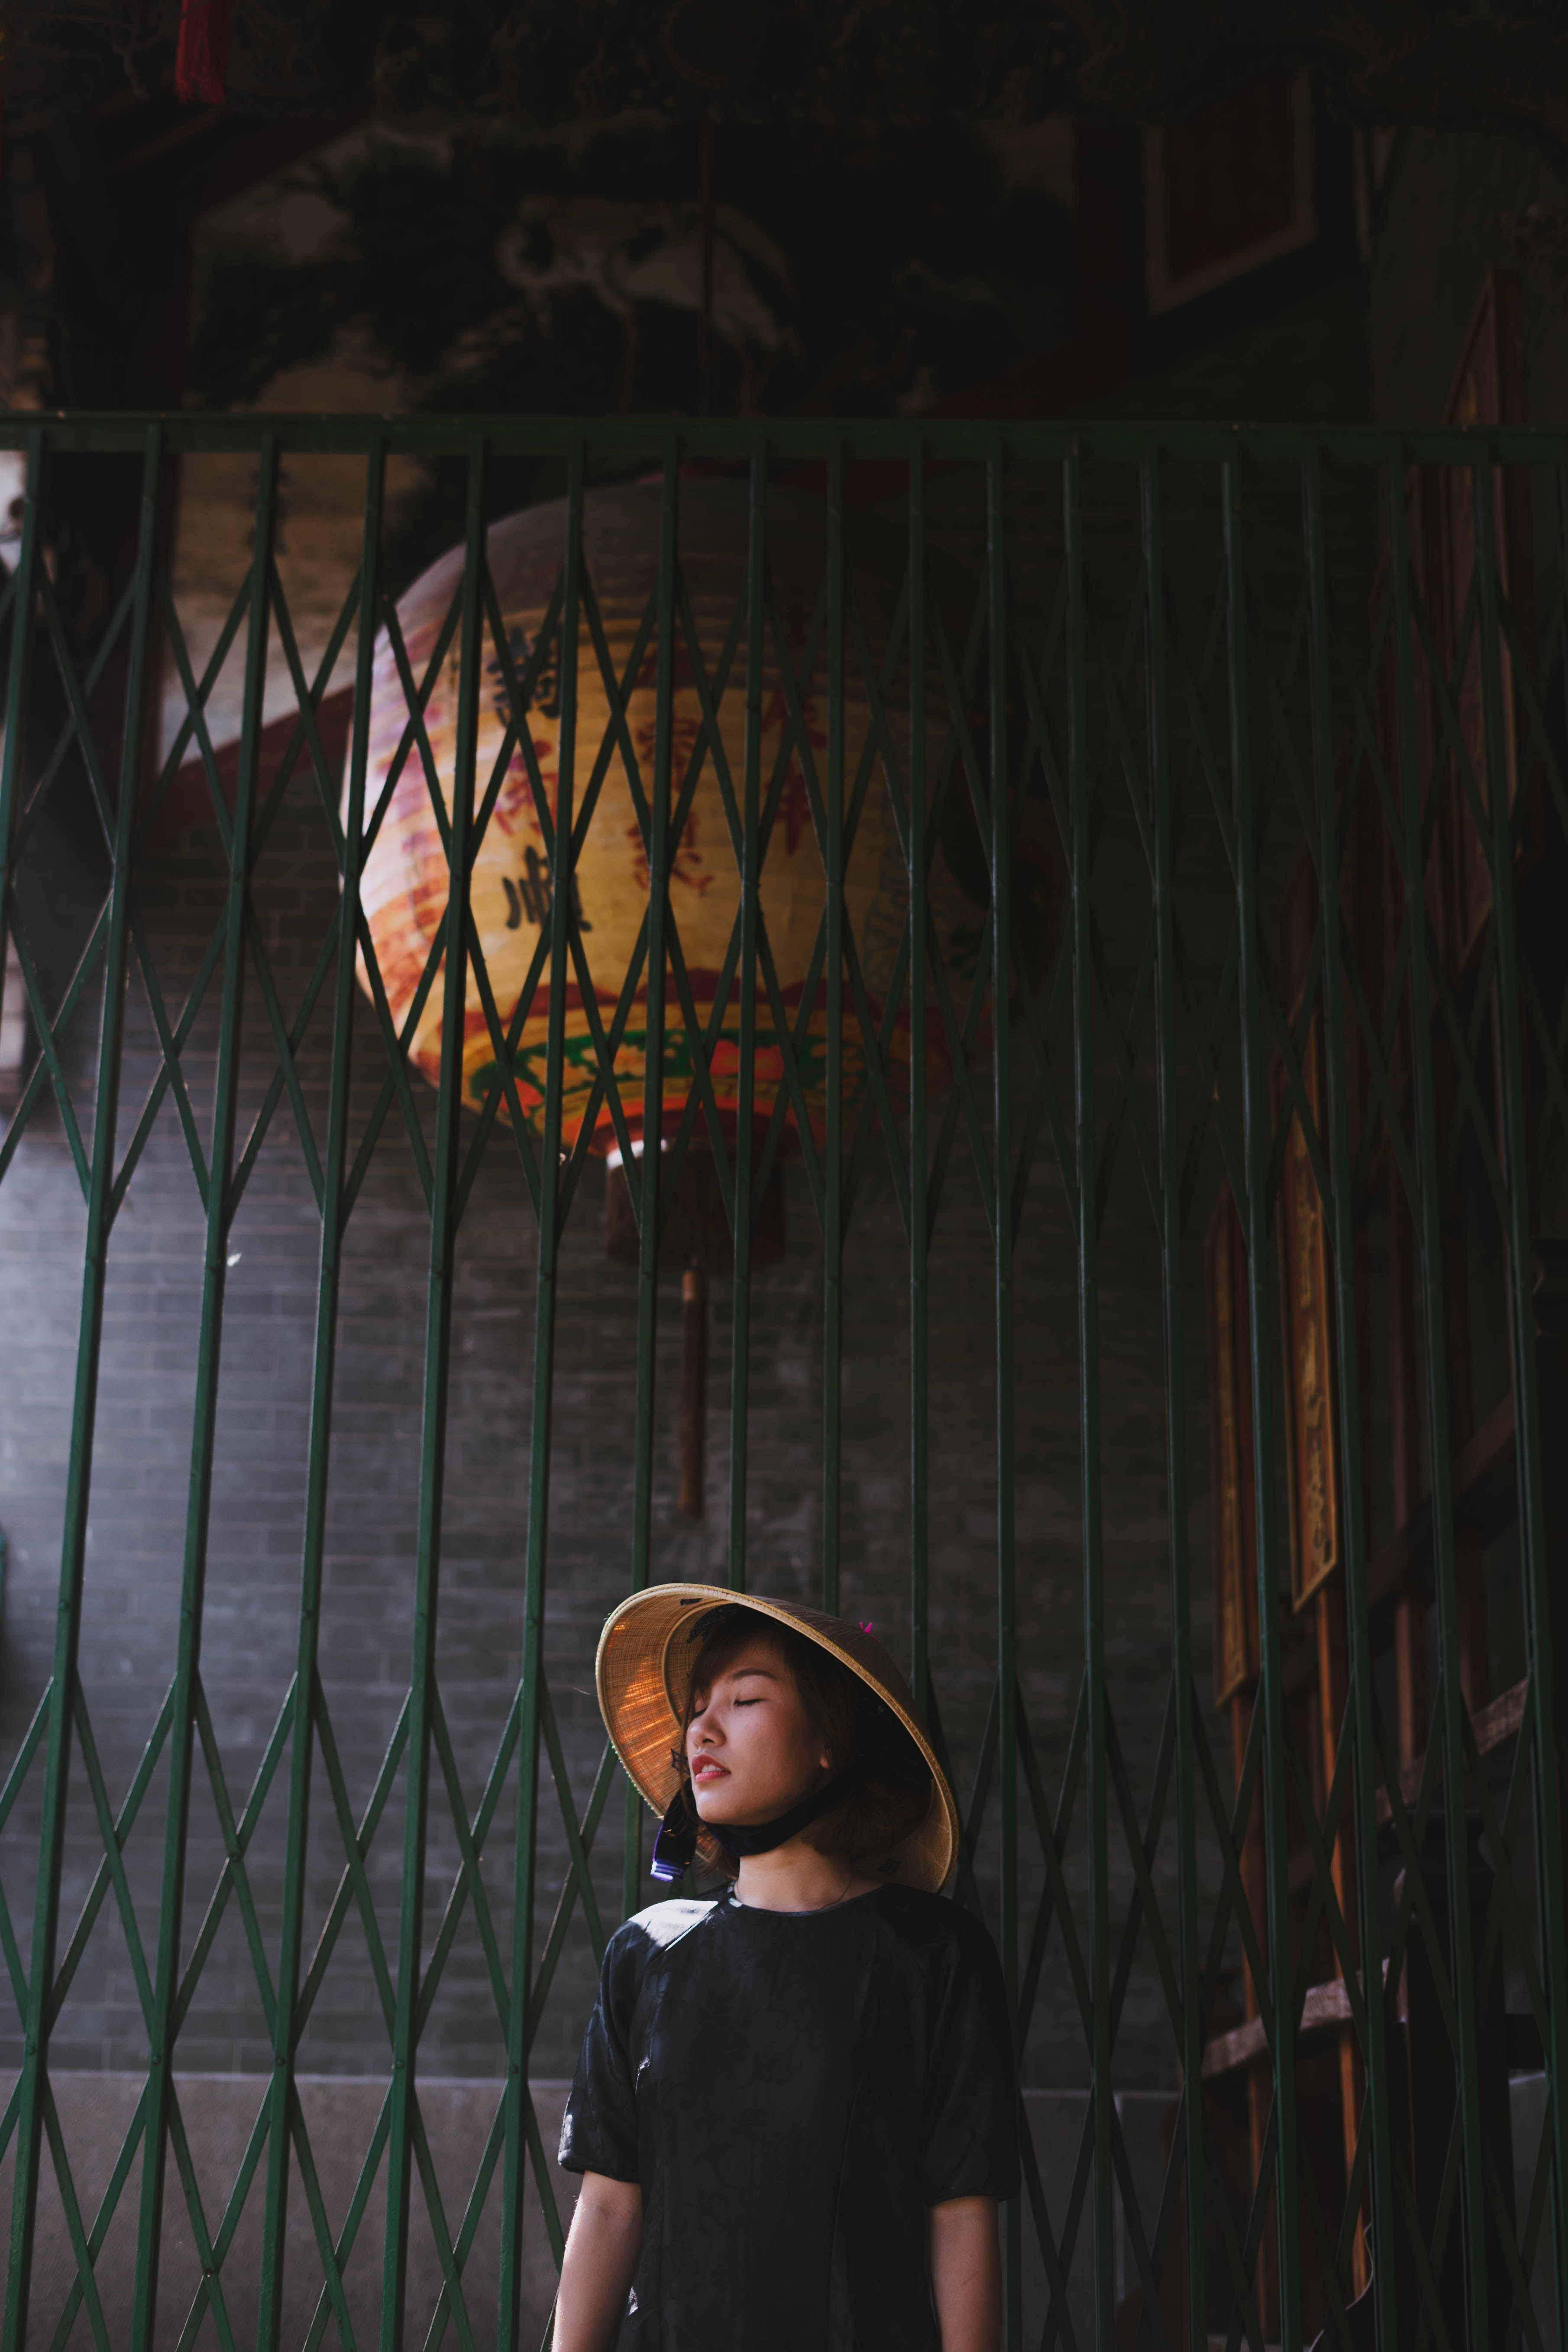 woman wearing brown bamboo hat standing near metal gate